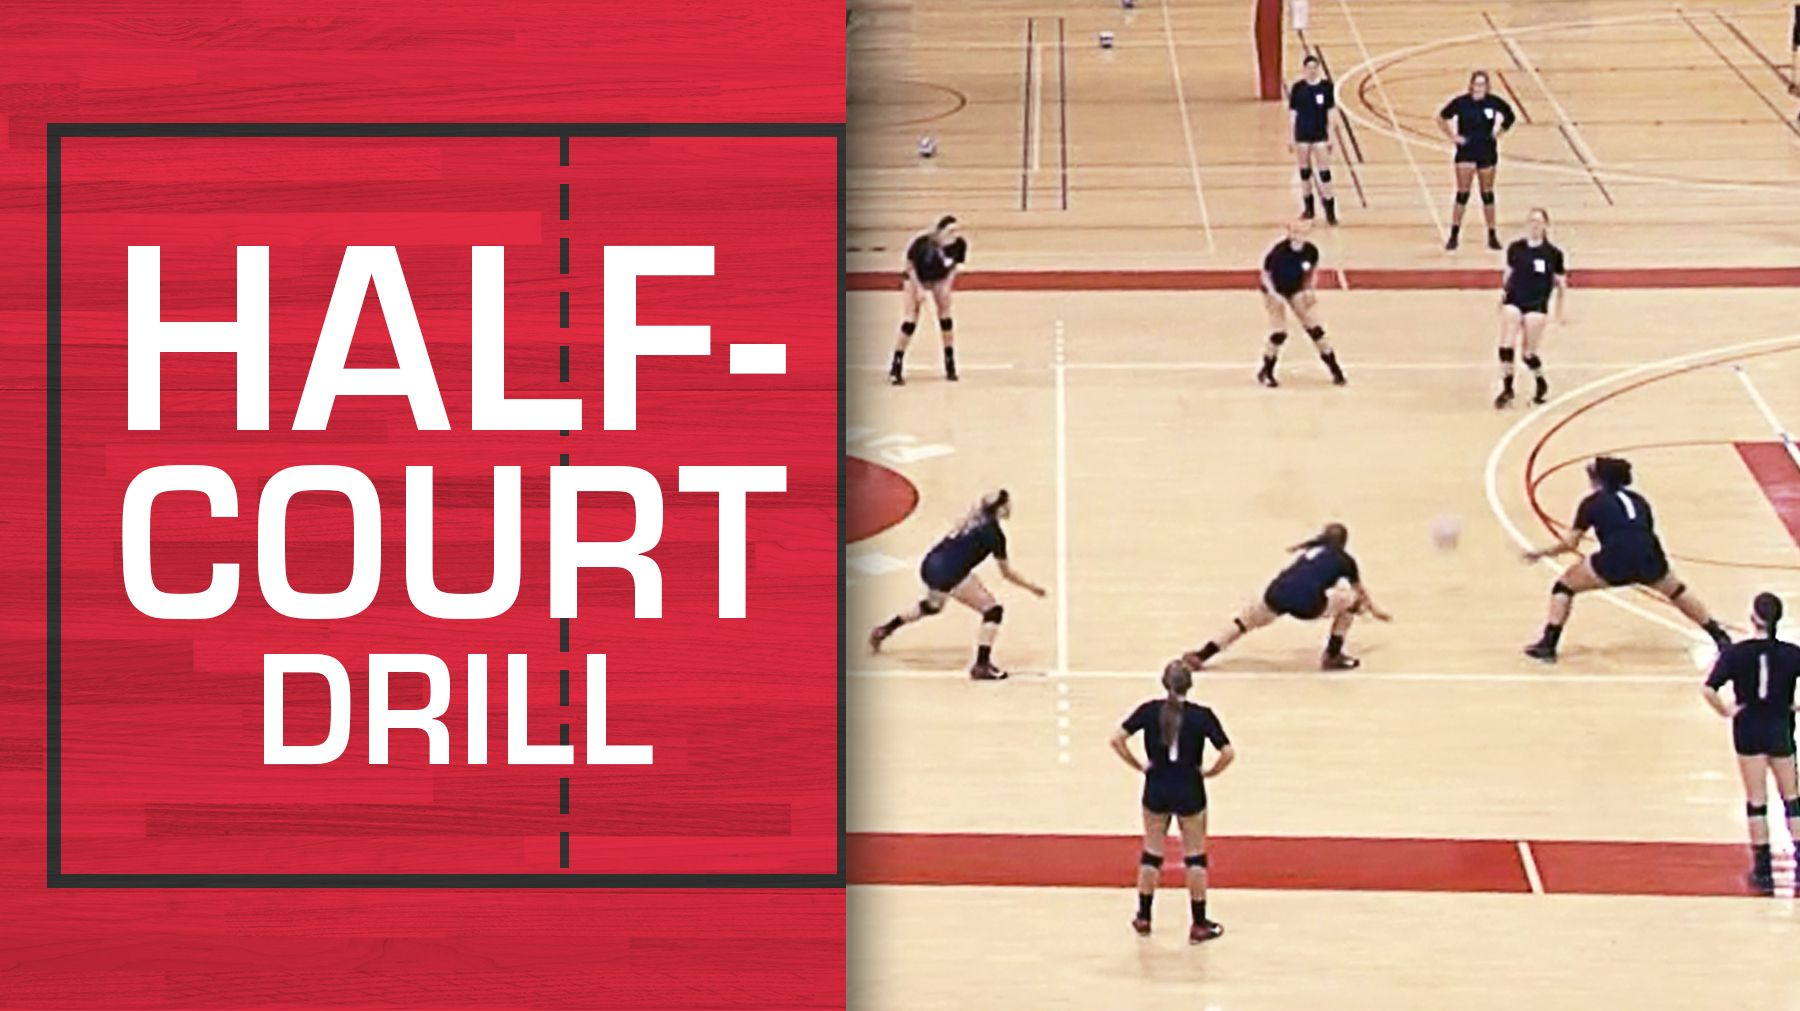 Half Court Drill For Creative Ball Control Training The Art Of Coaching Volleyball Coaching Volleyball Basketball Workouts Volleyball Workouts